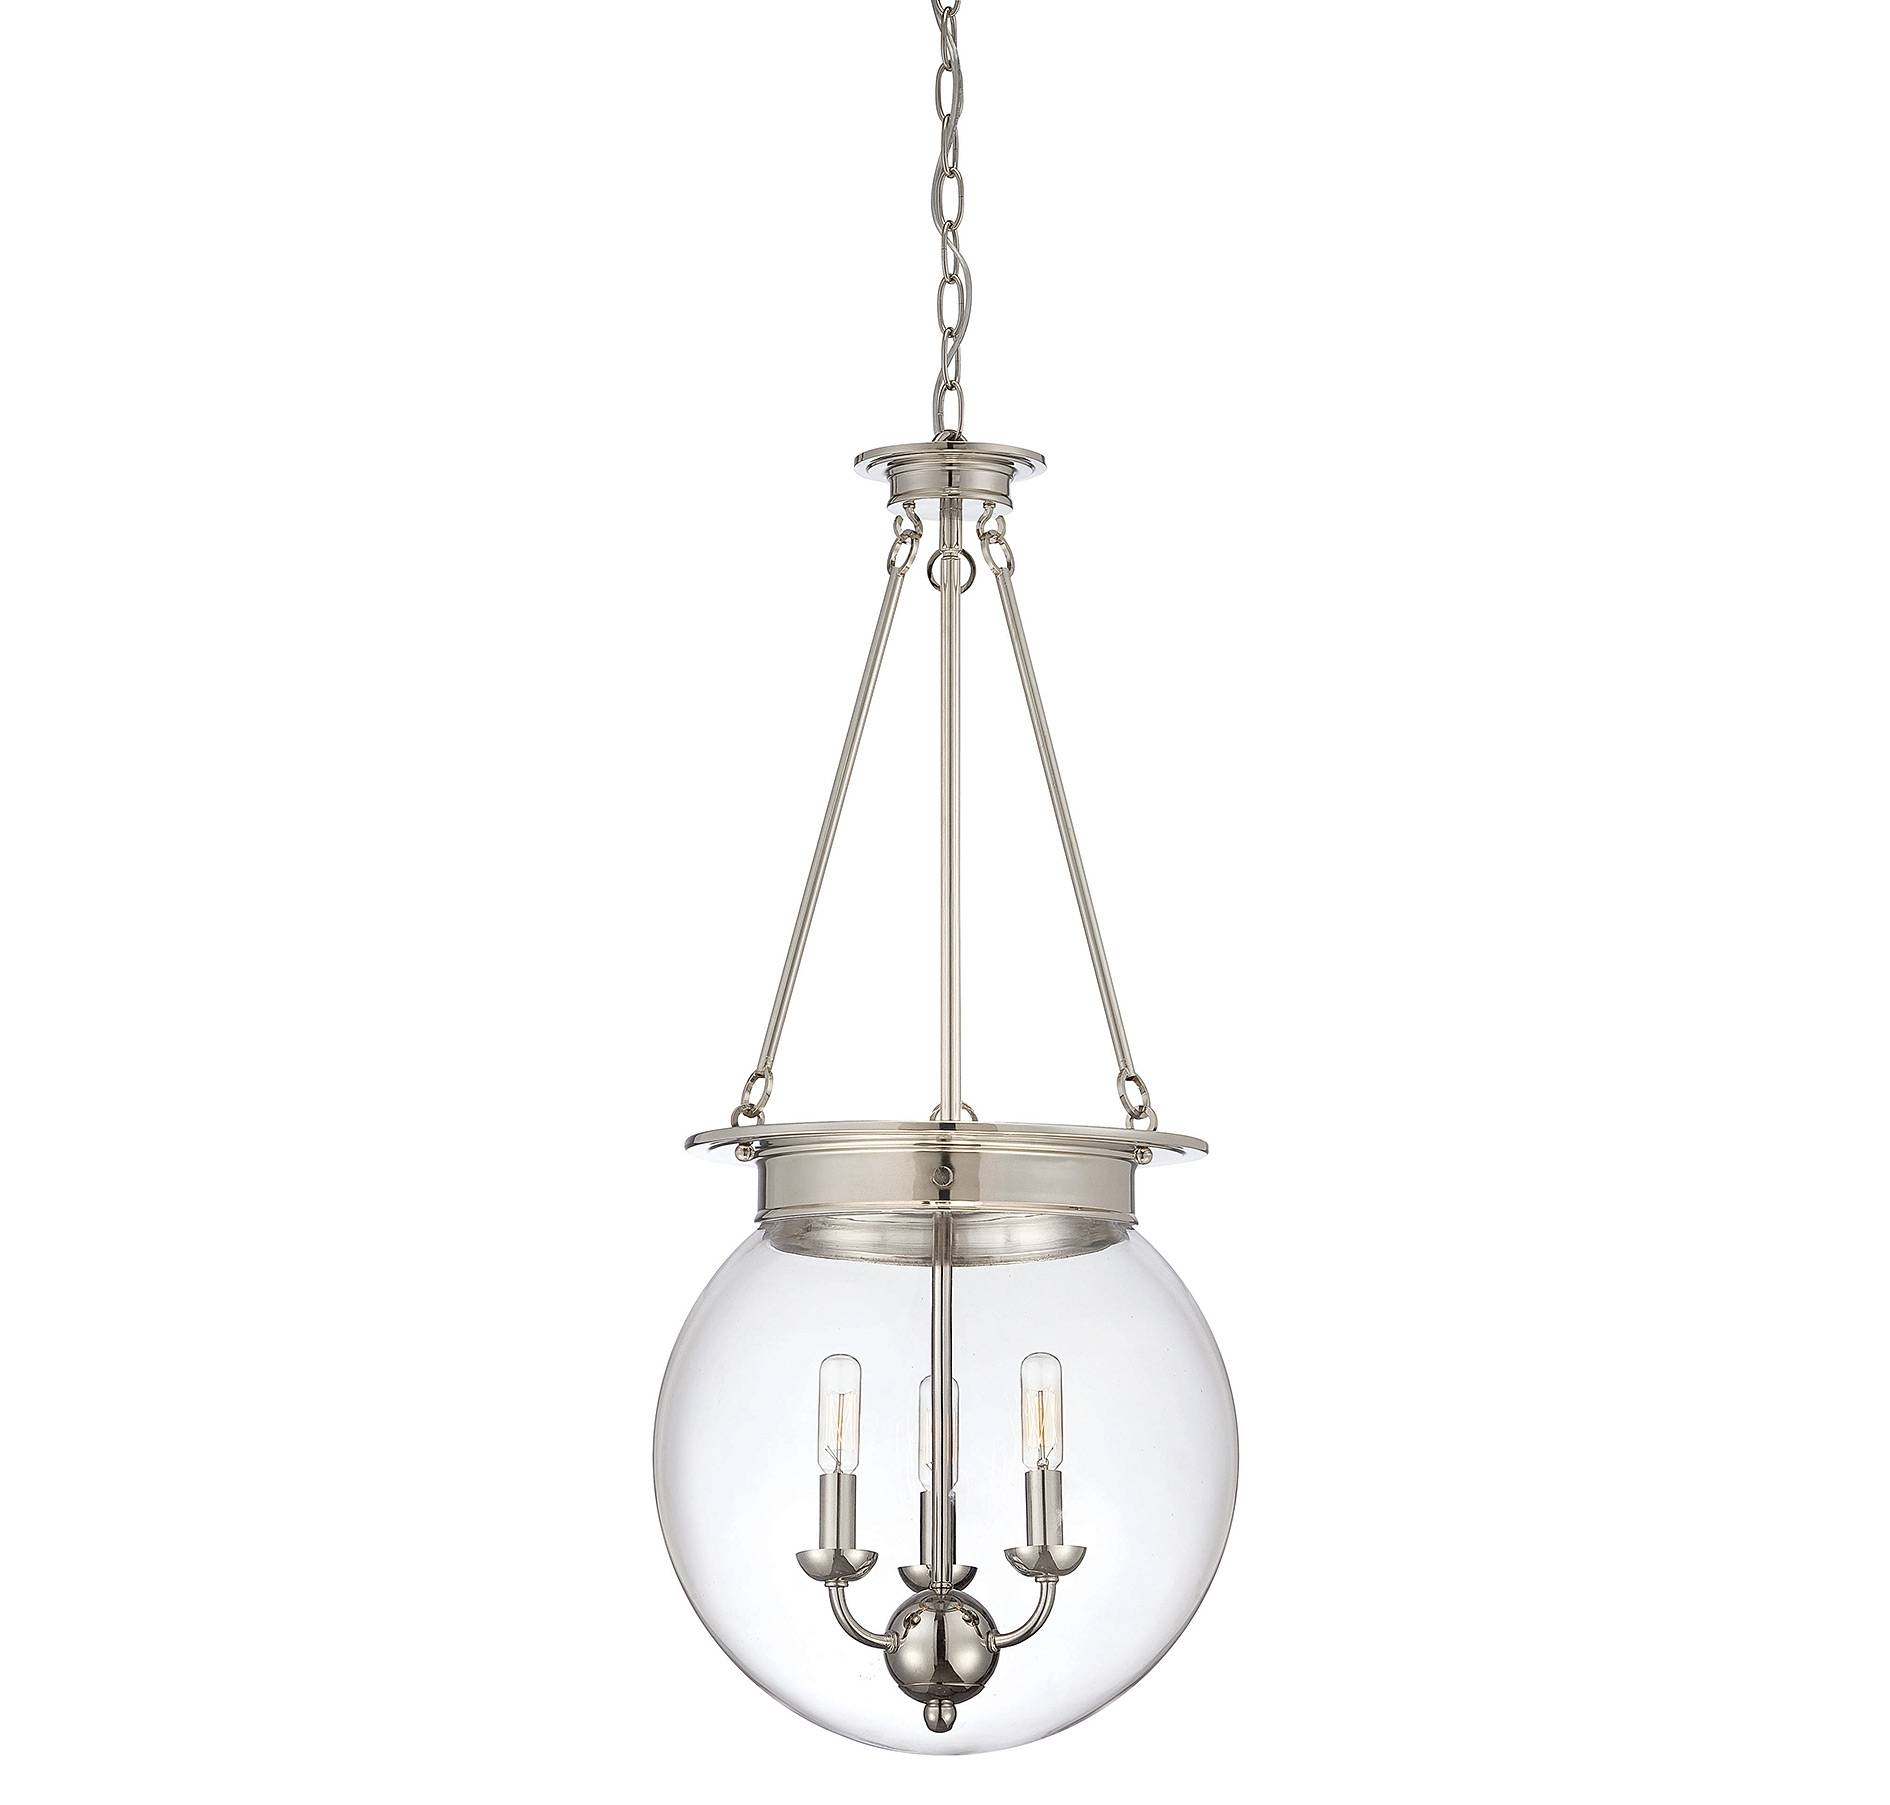 Fancy Glass Orb Pendant Light 28 With Additional Clear Glass Mini in Glass Orb Pendant Lights (Image 6 of 15)